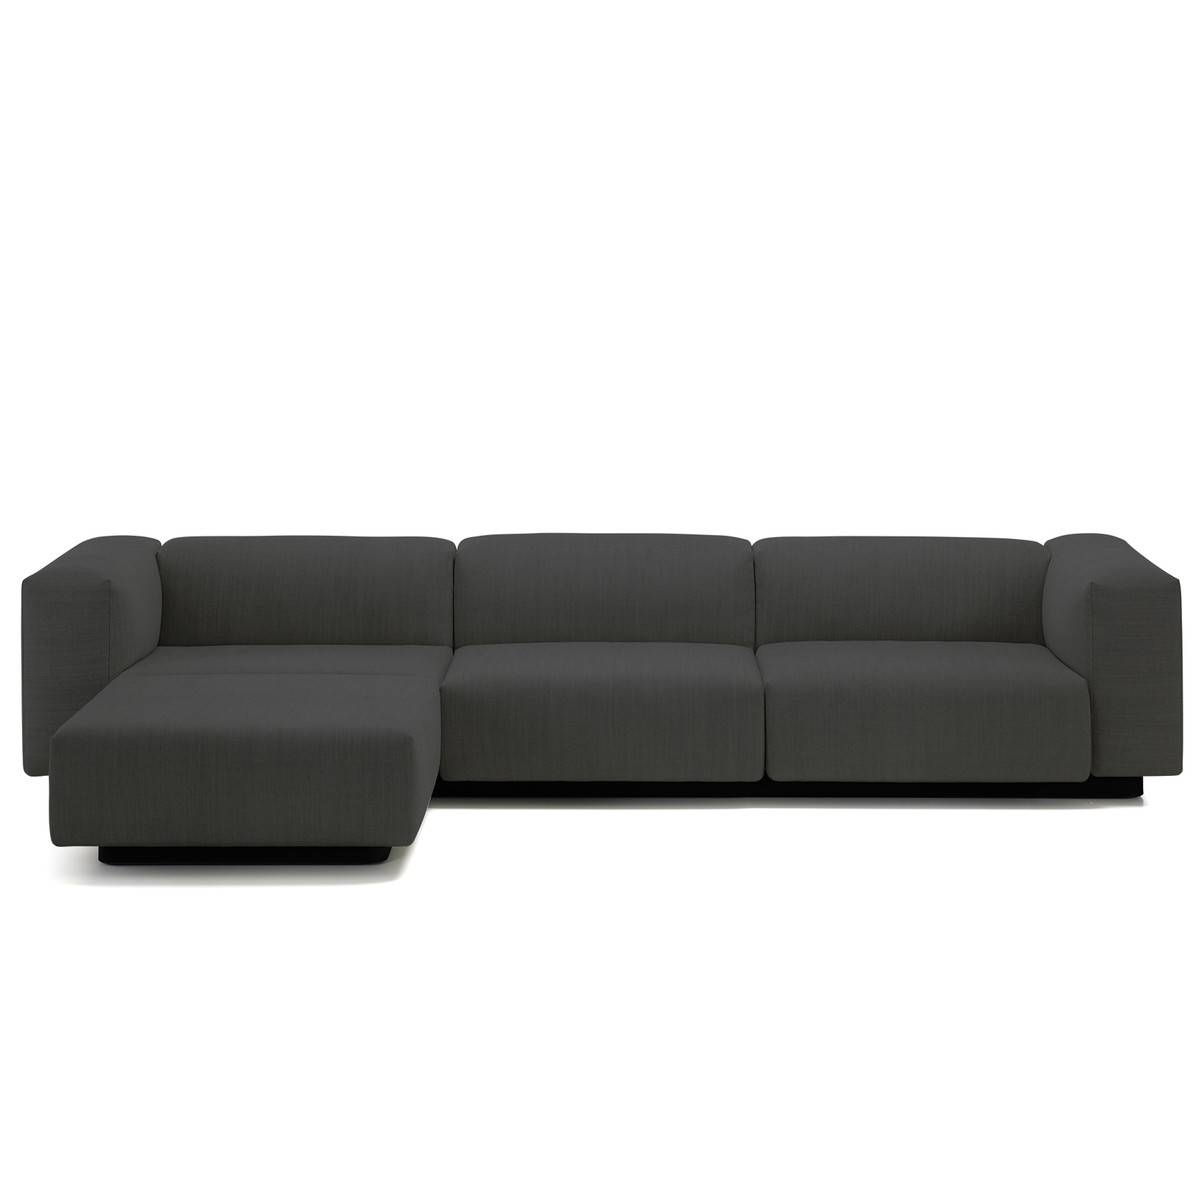 Buy The Soft Modular Corner Sofa From Vitra within Modular Corner Sofas (Image 10 of 30)